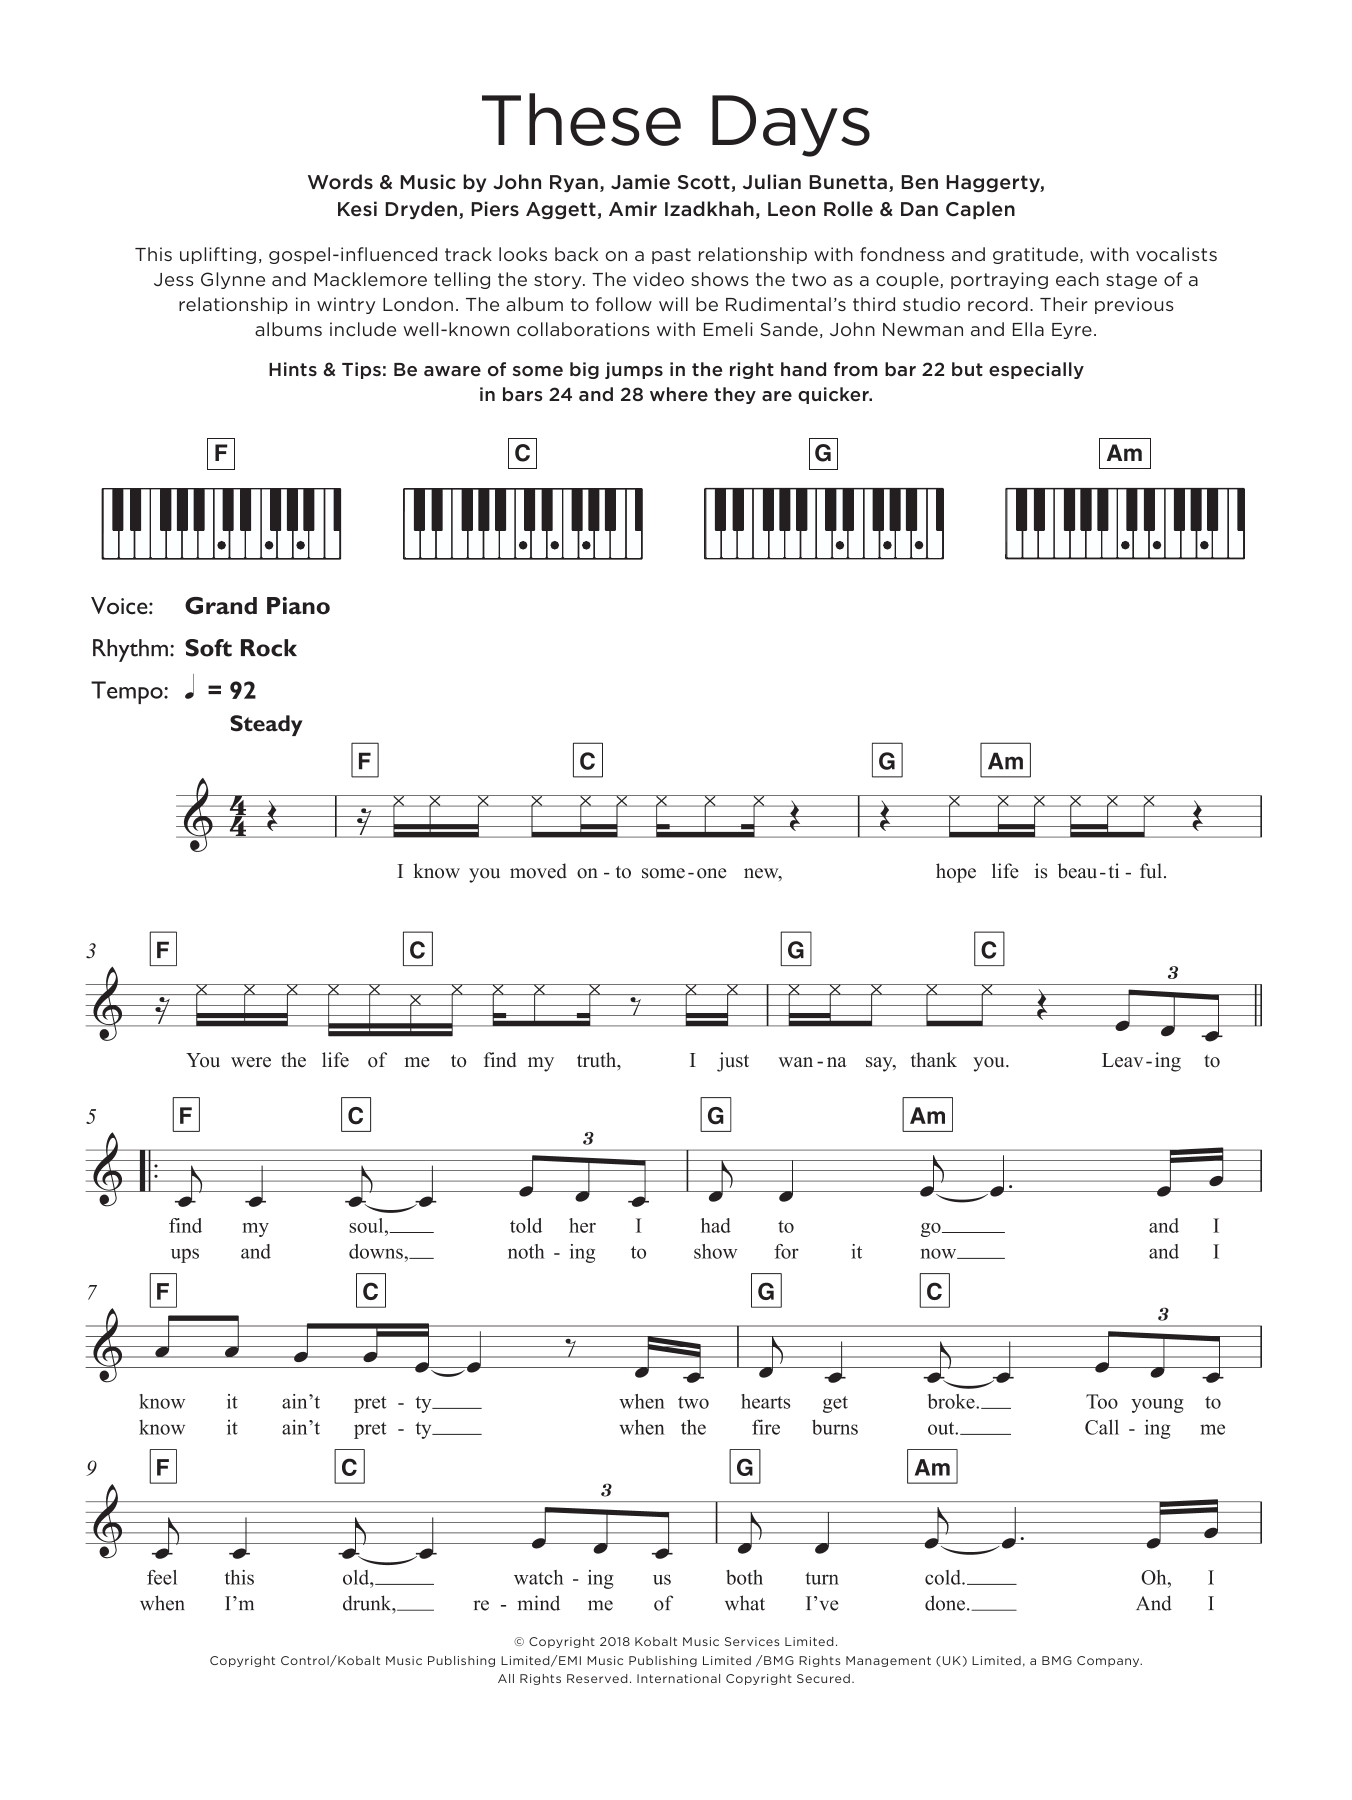 These Days (featuring Jess Glynne, Macklemore and Dan Caplen) Sheet Music